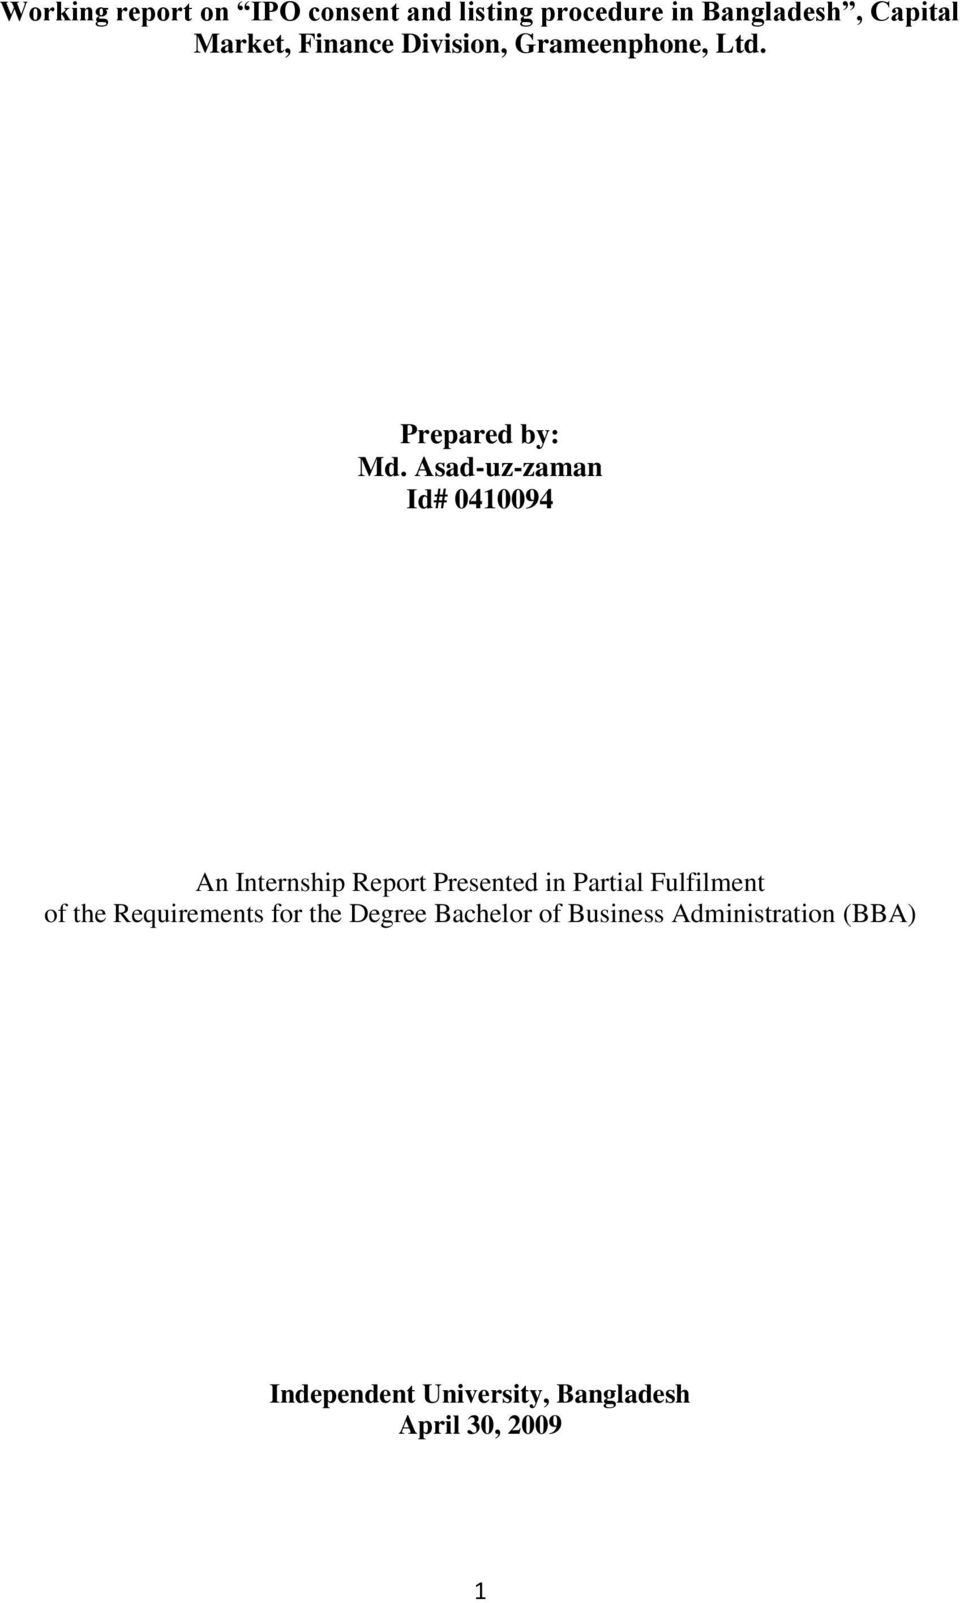 Working report on IPO consent and listing procedure in